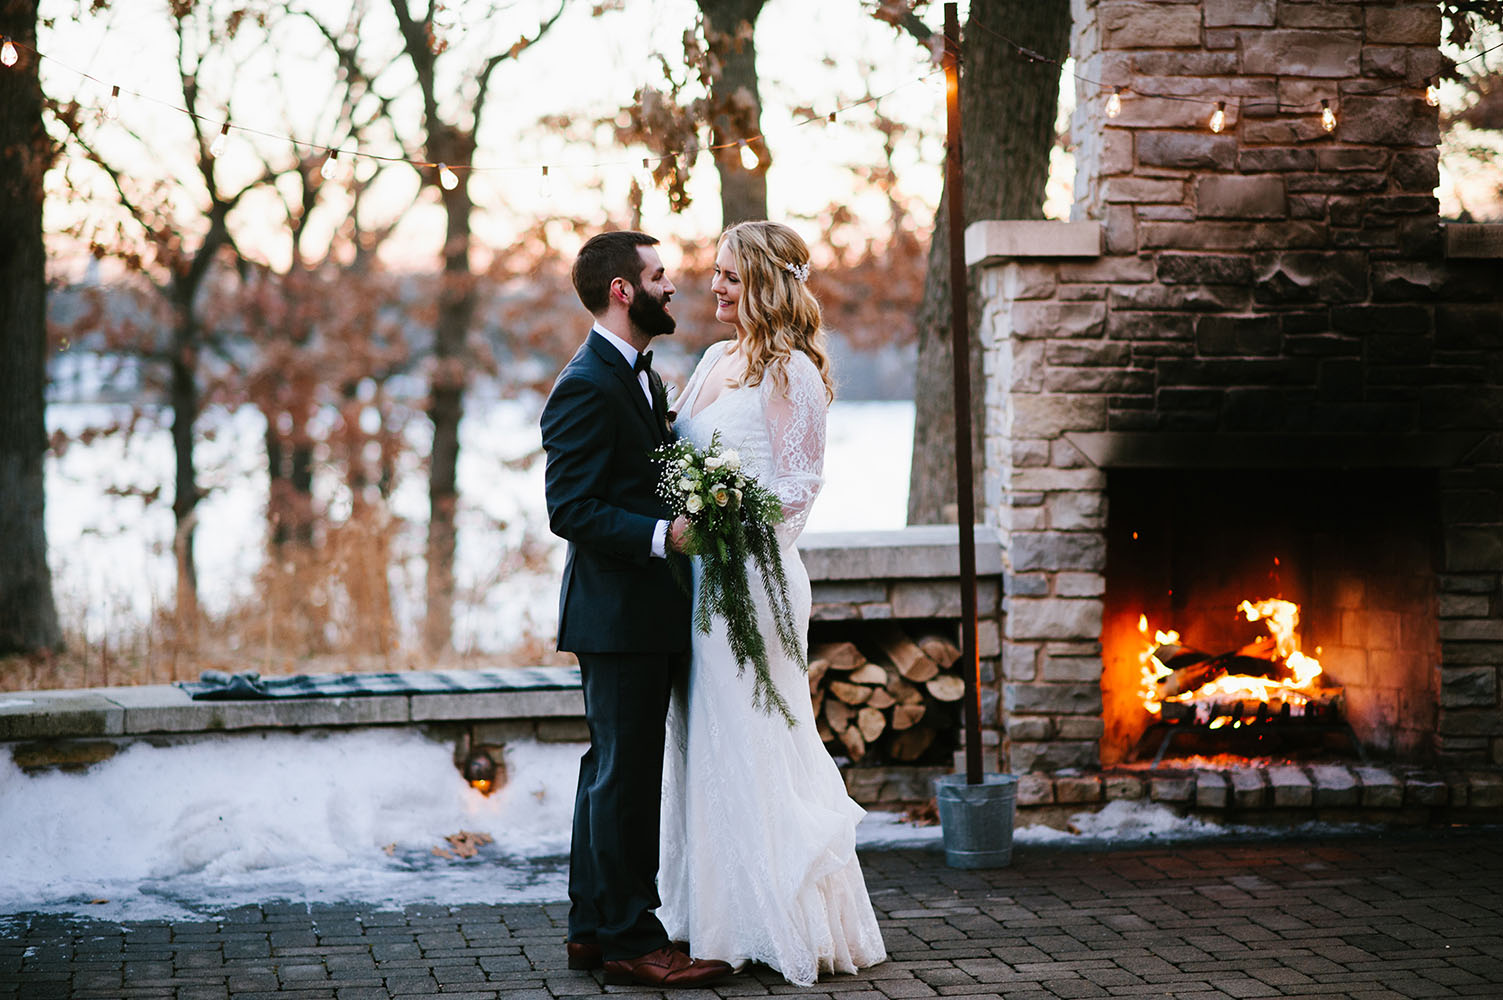 married couple by outdoor fireplace